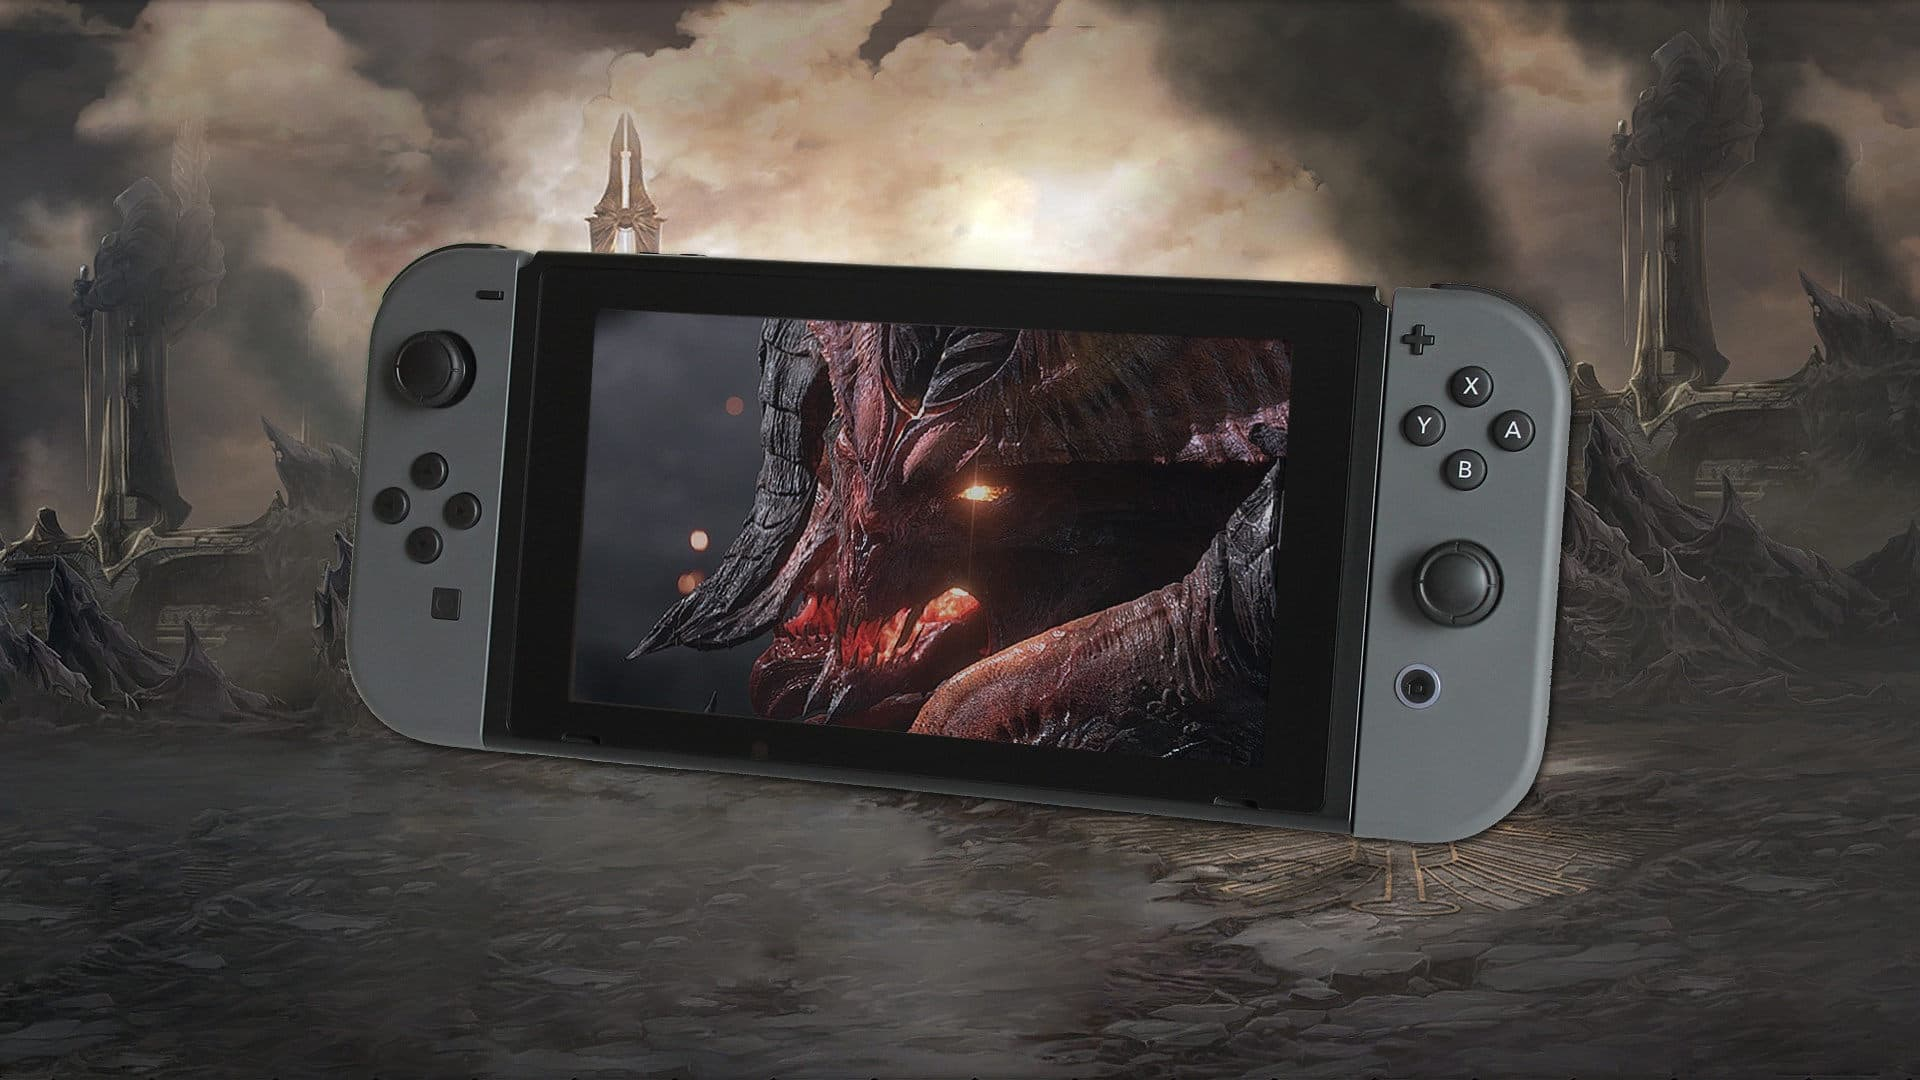 Diablo 3 on Switch Gameplay Video